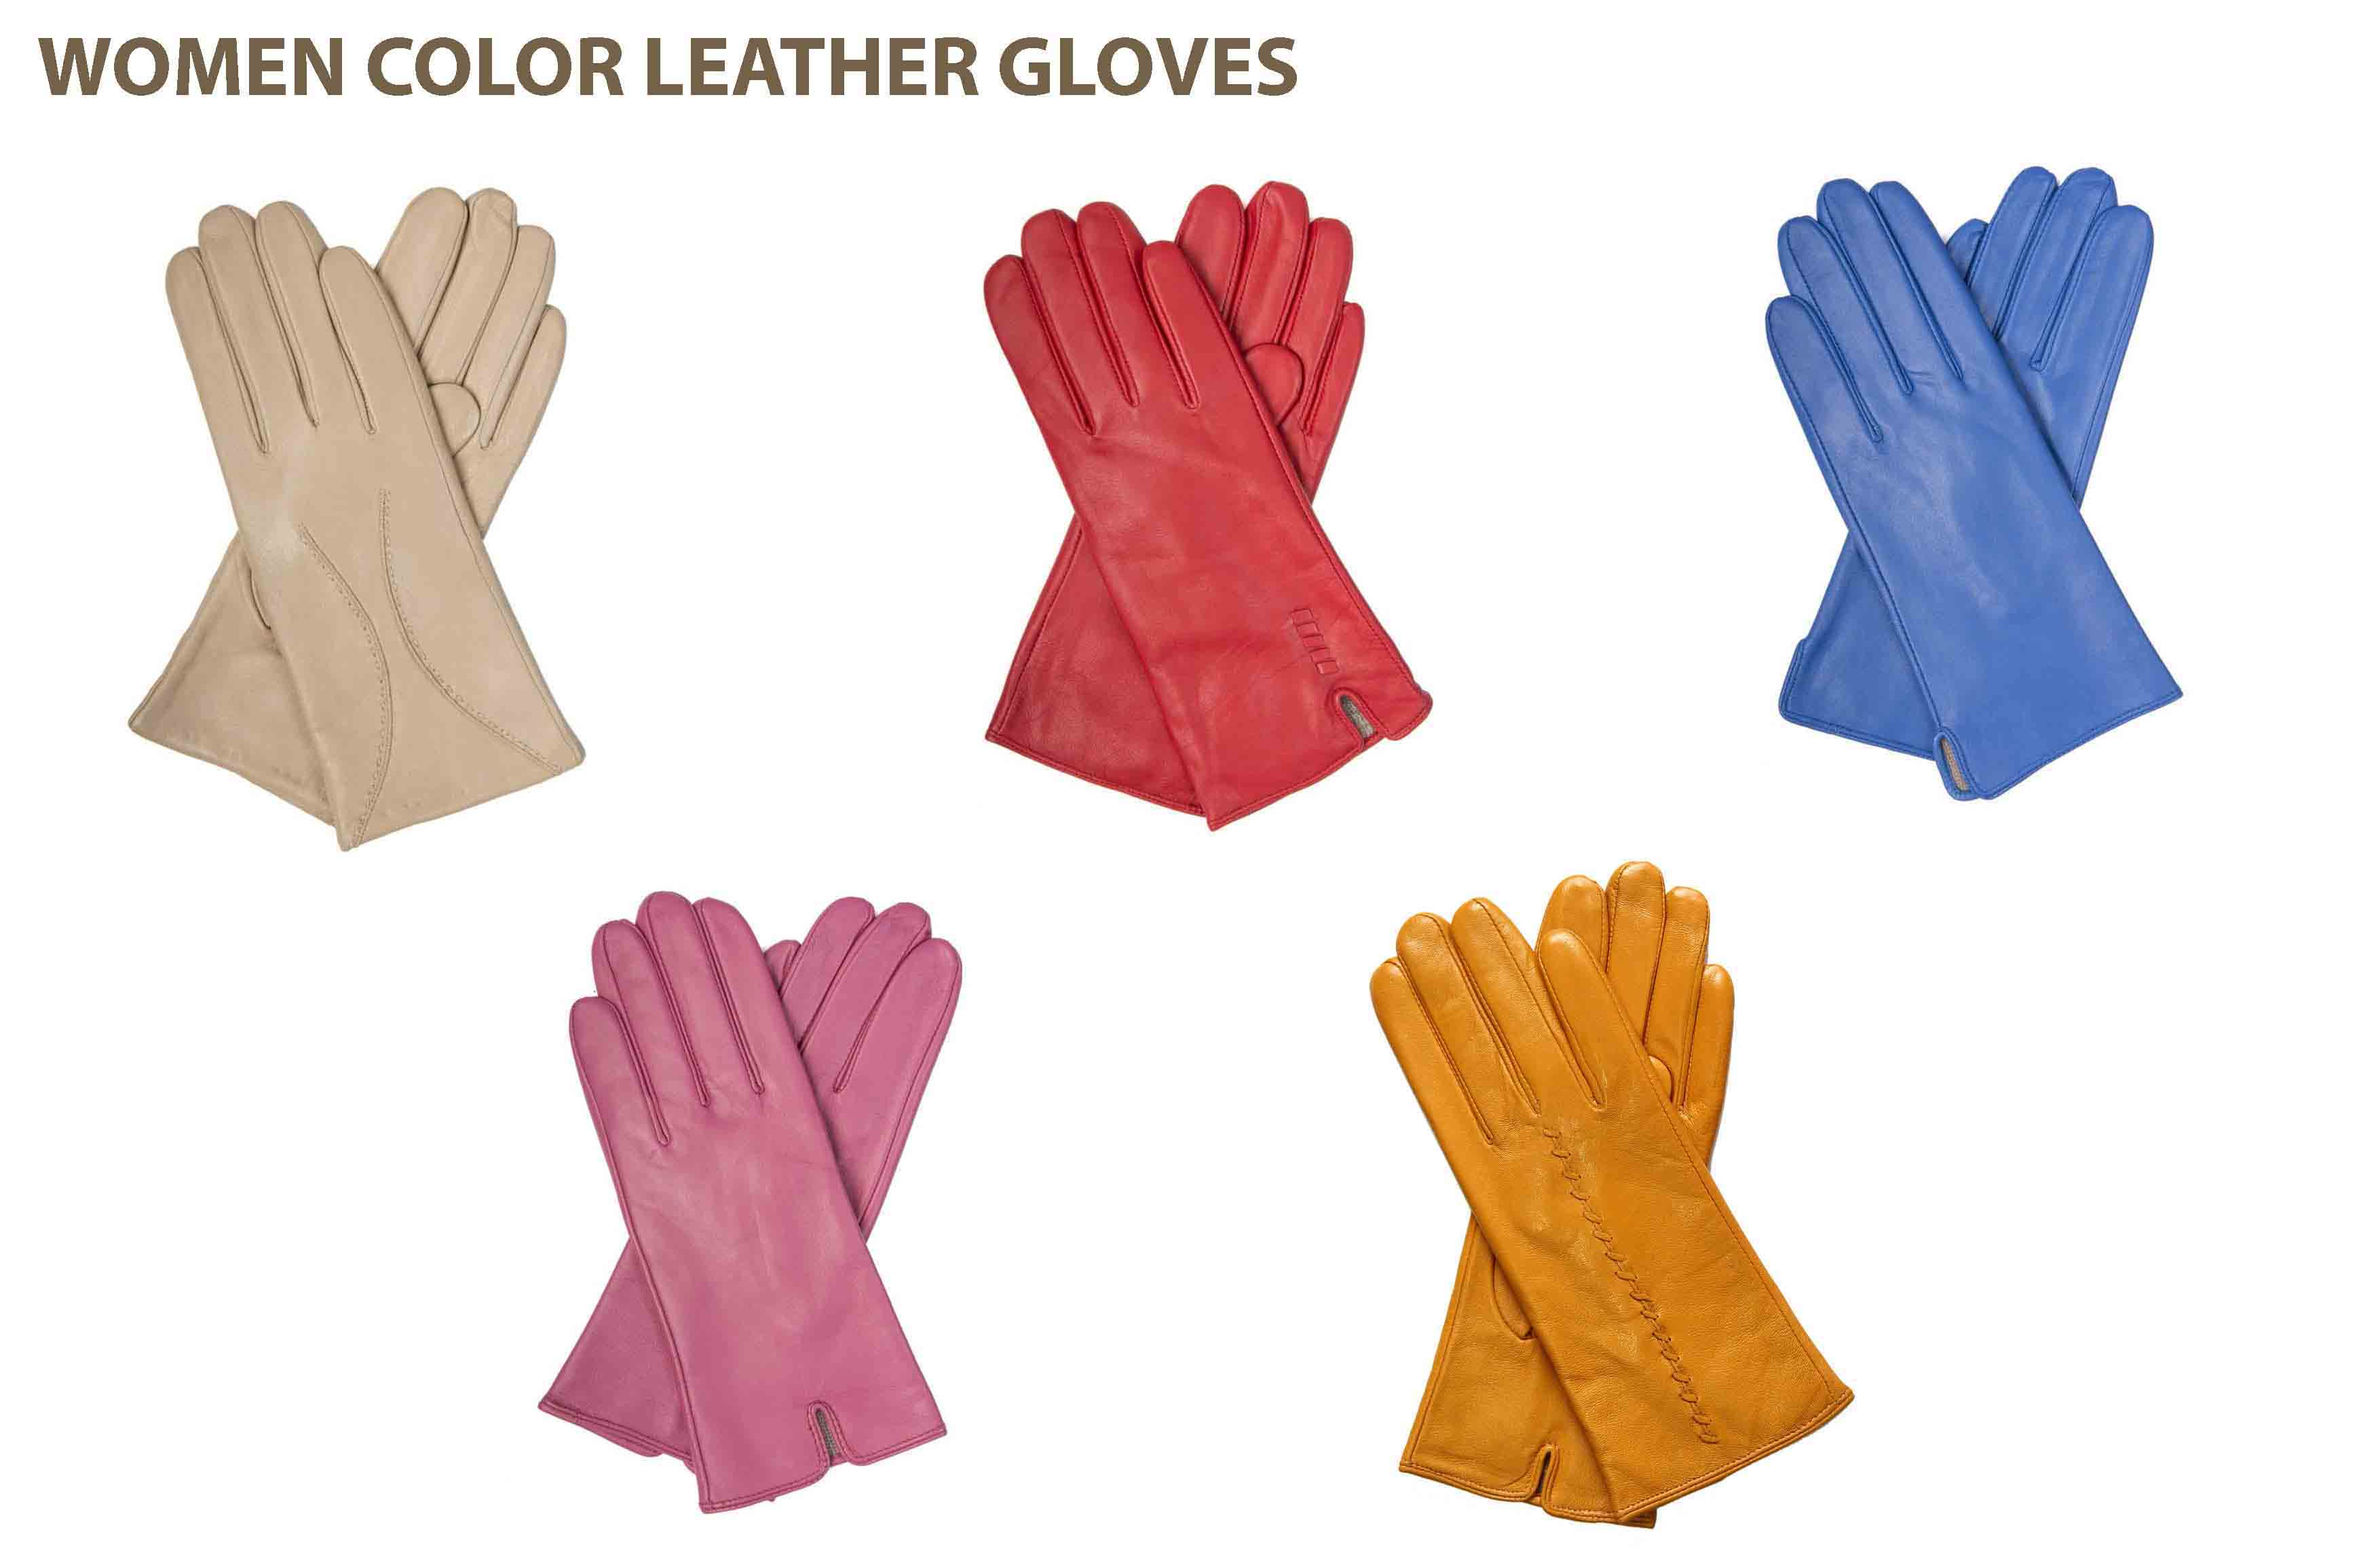 Womens colored leather gloves - 18665 Women Color Leather Gloves Europe